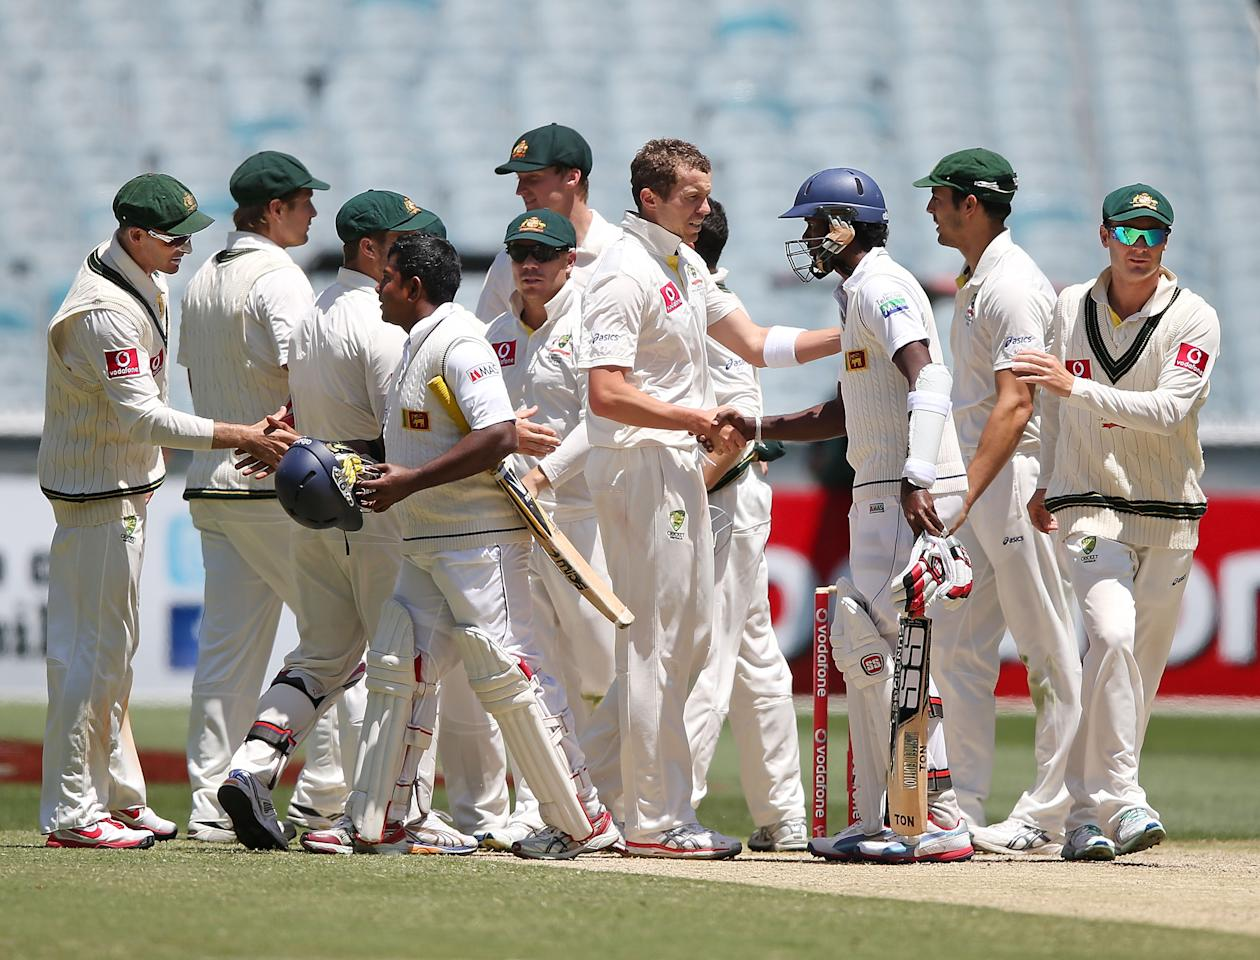 MELBOURNE, AUSTRALIA - DECEMBER 28:  The Sri Lankan batsmen congratulate the Australian cricket team who won the match during day three of the Second Test match between Australia and Sri Lanka at Melbourne Cricket Ground on December 28, 2012 in Melbourne, Australia.  (Photo by Michael Dodge/Getty Images)